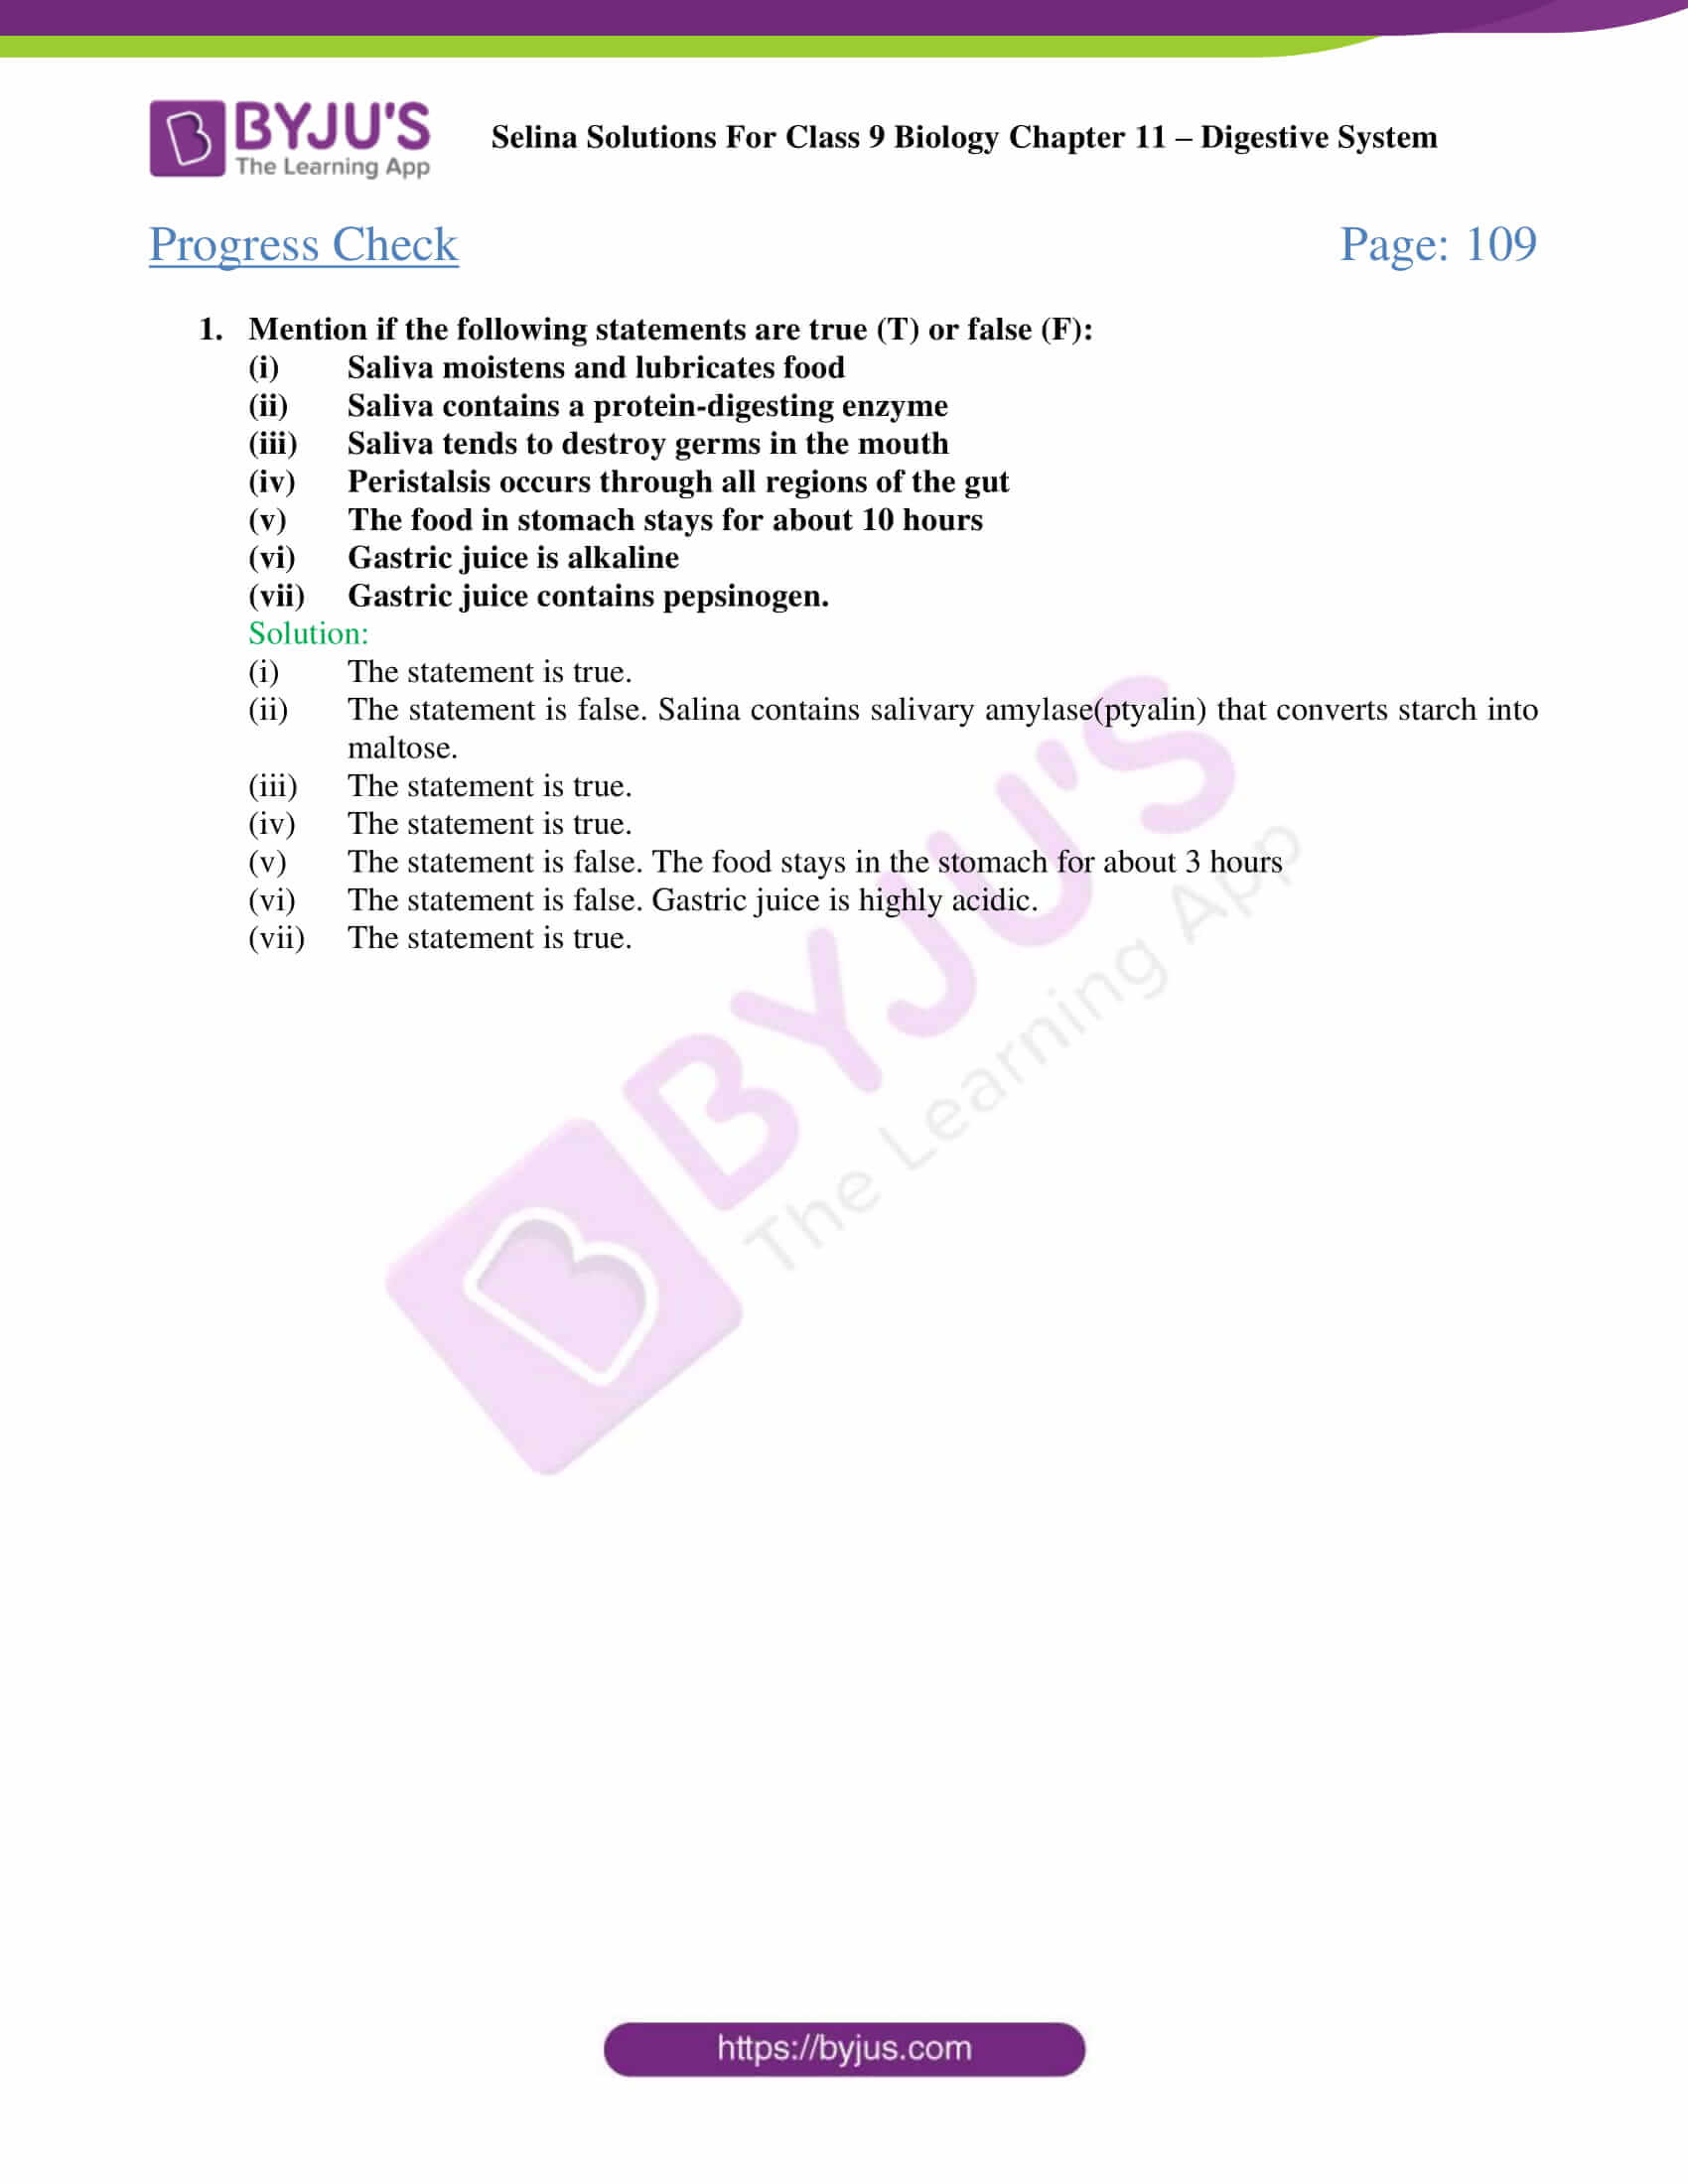 selina Solutions For Class 9 Biology Chapter 11 part 02